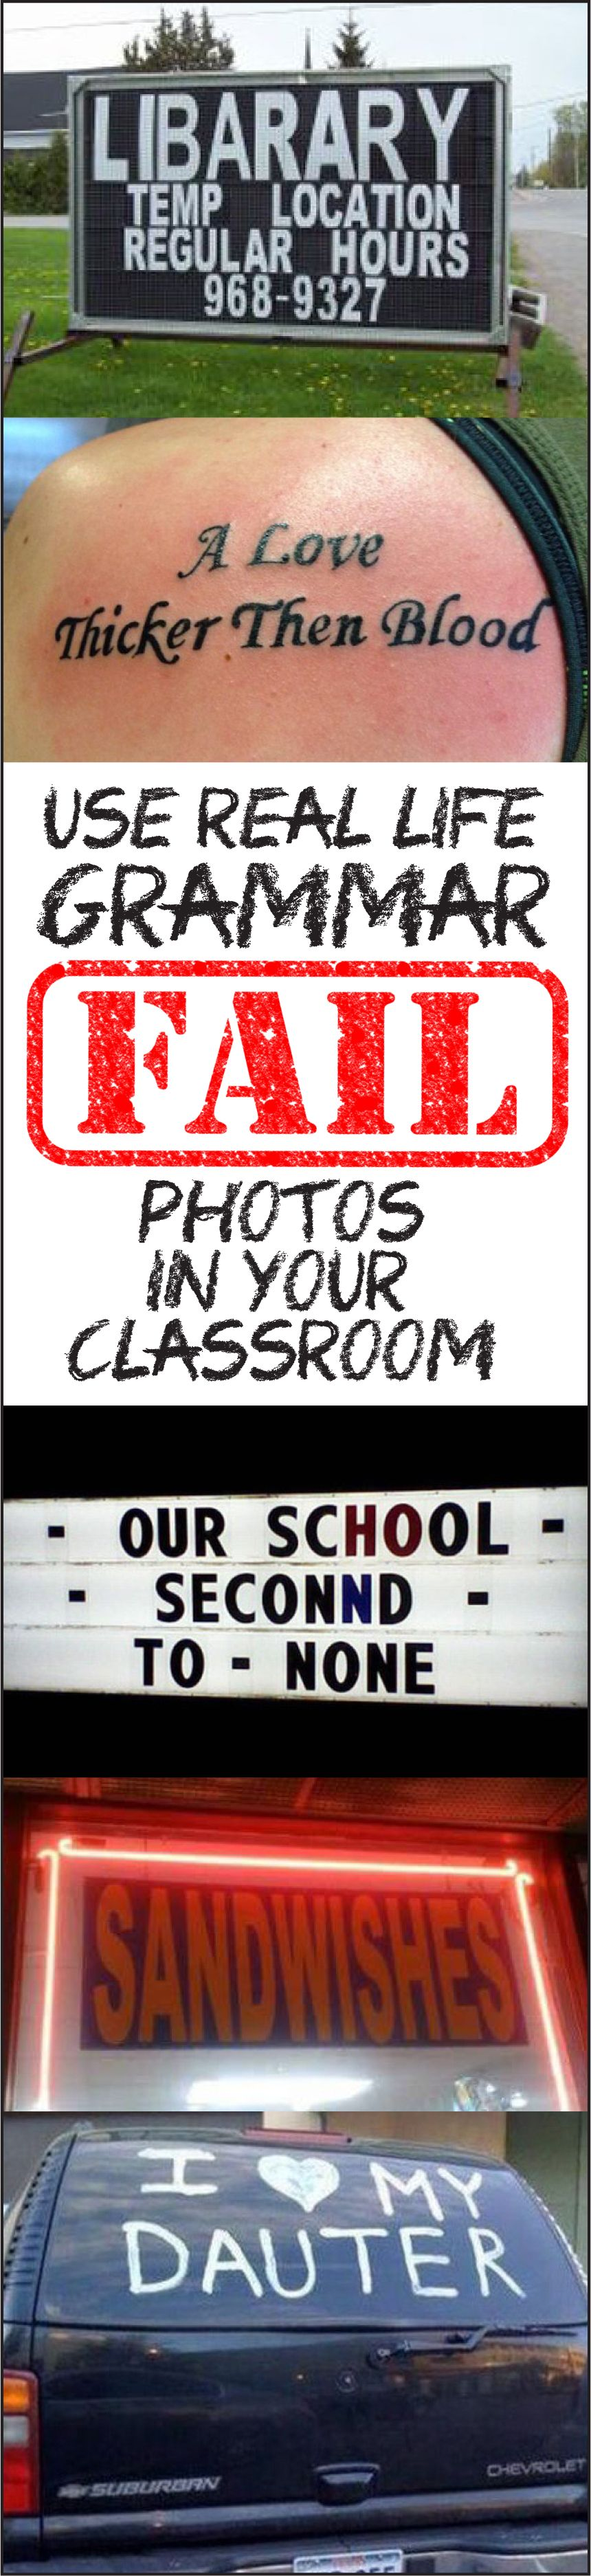 LOTS of ways to use grammar fail images in your English/language arts classroom. For grades 5 to 12. #grammarfail #English #highschool #middleschool